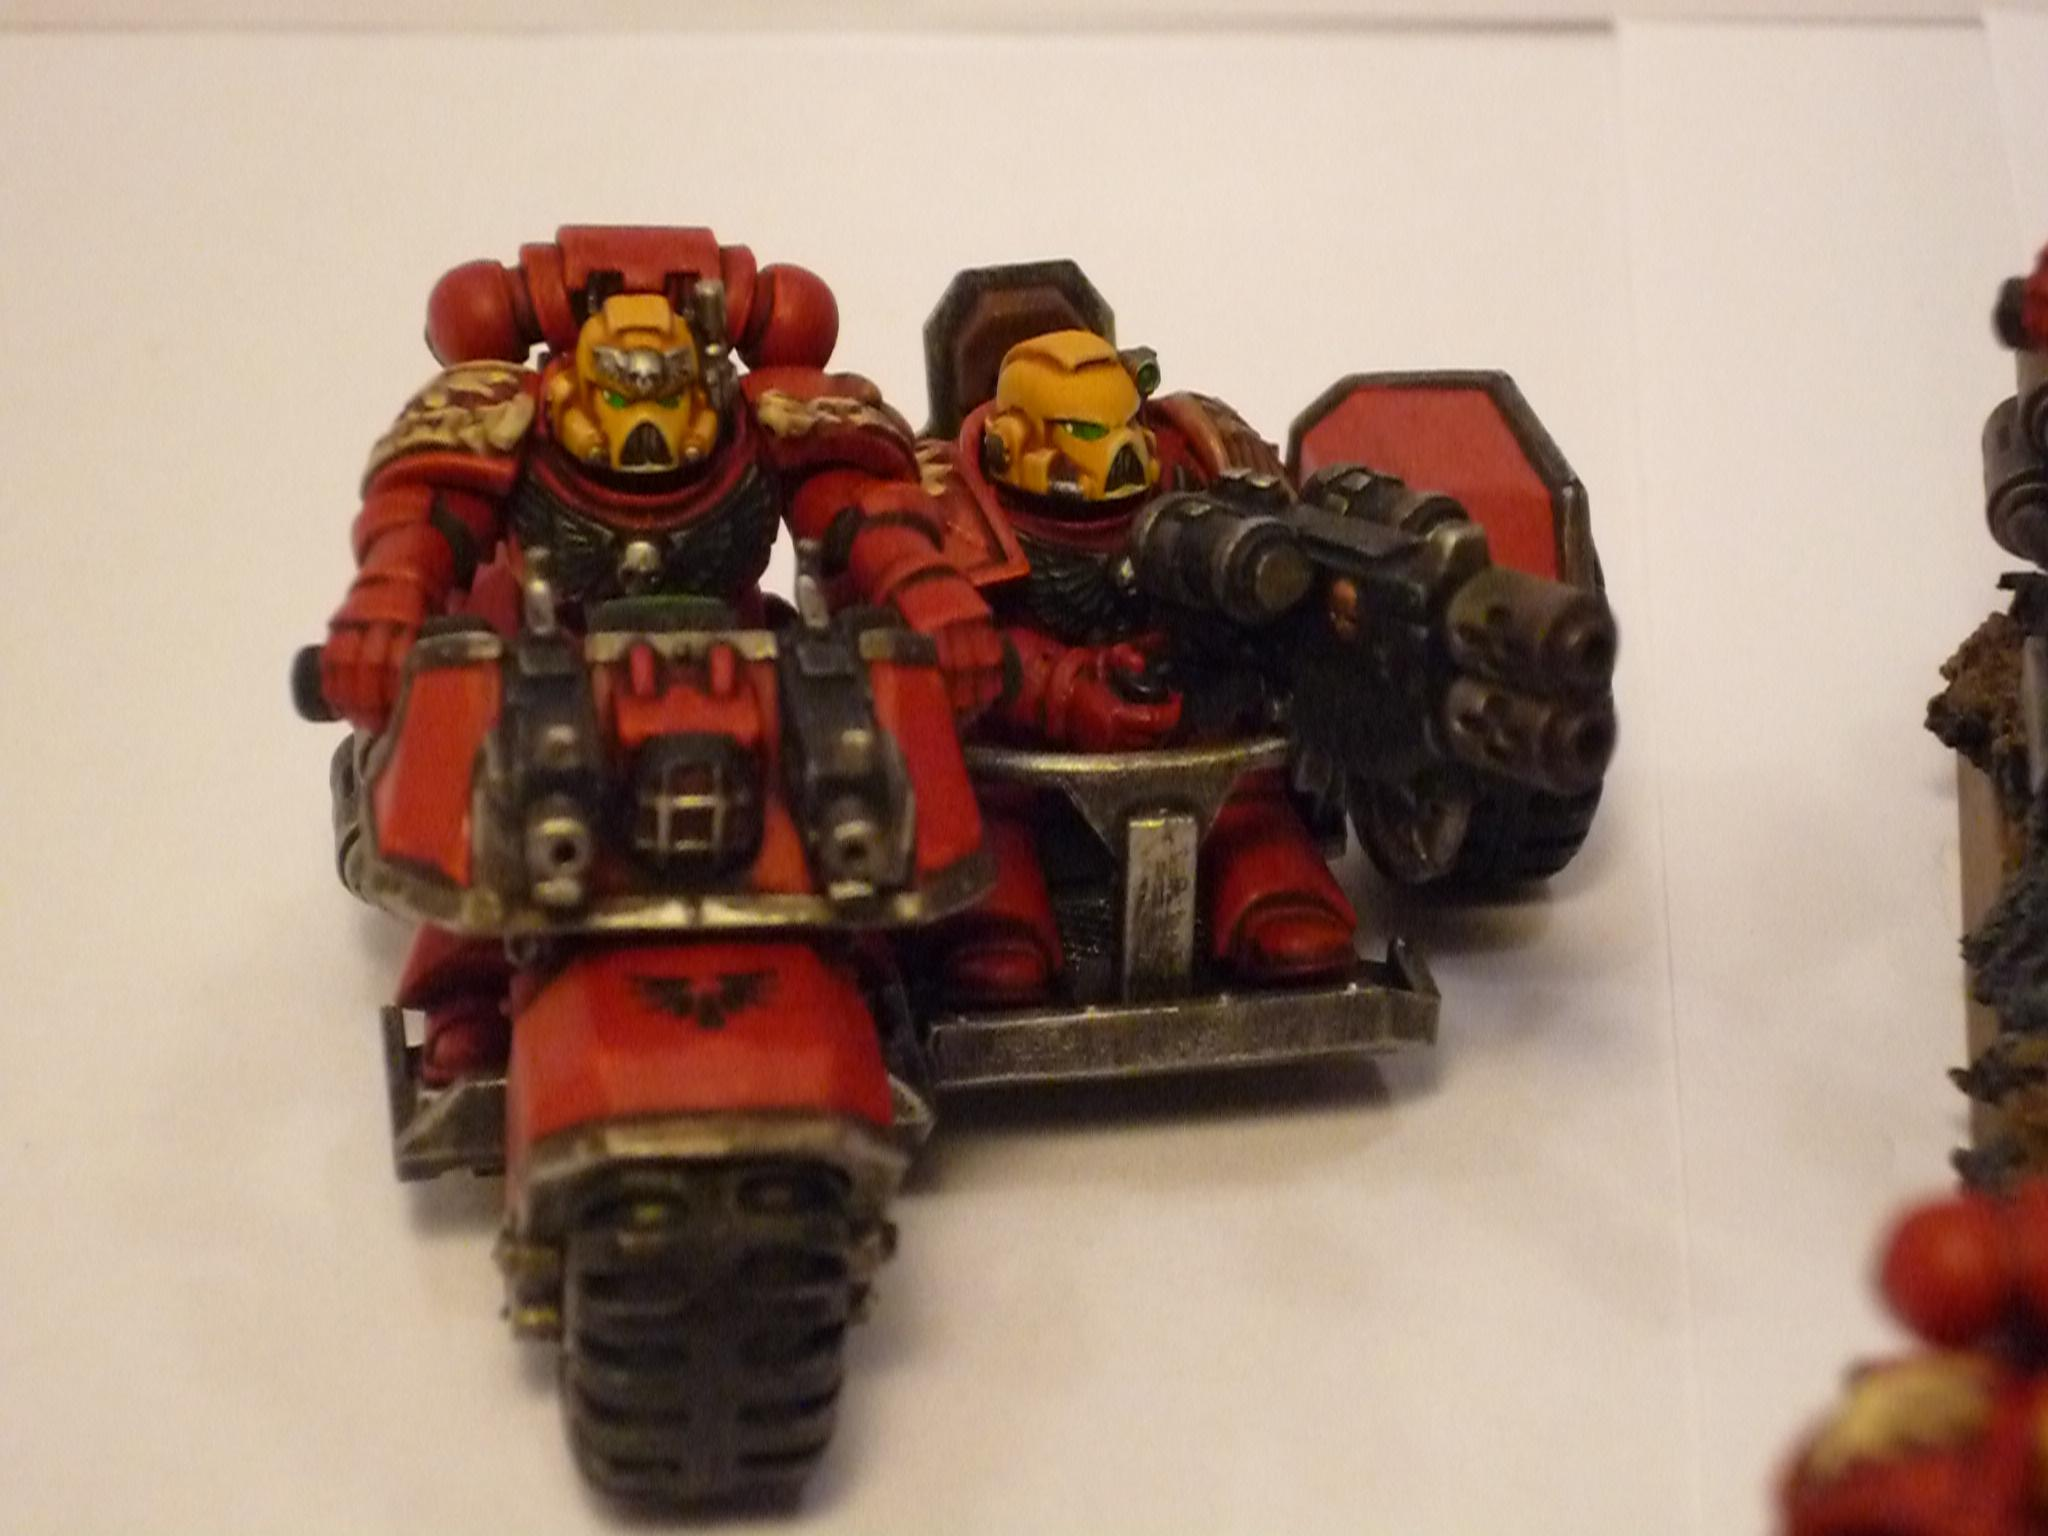 Astartes, Attack Bike, Bike, Blood Angels, Fast Attack, Red, Space Marines, Warhammer 40,000, Yellow, Yellow Helmet